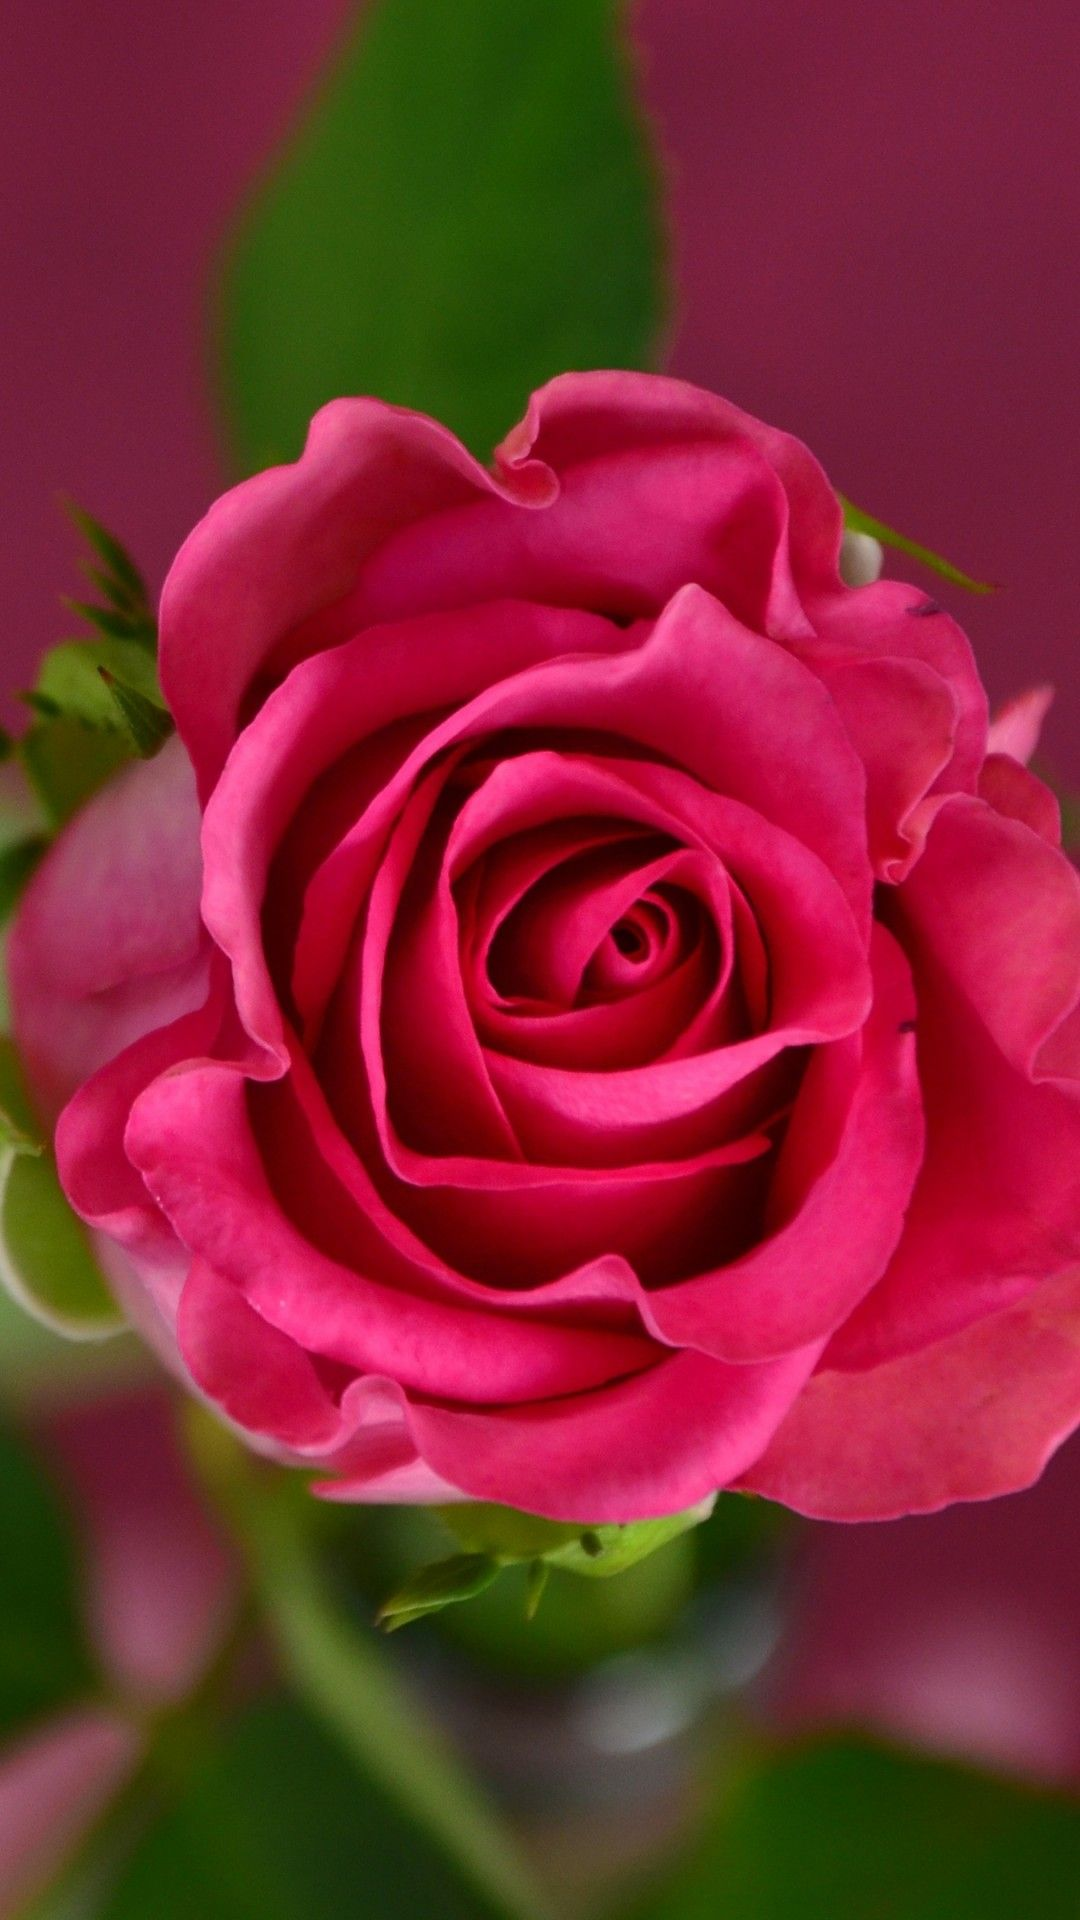 Flower Wallpapers Background Hupages Download Iphone Wallpapers Pink Spring Flowers Beautiful Roses Wallpaper Nature Flowers